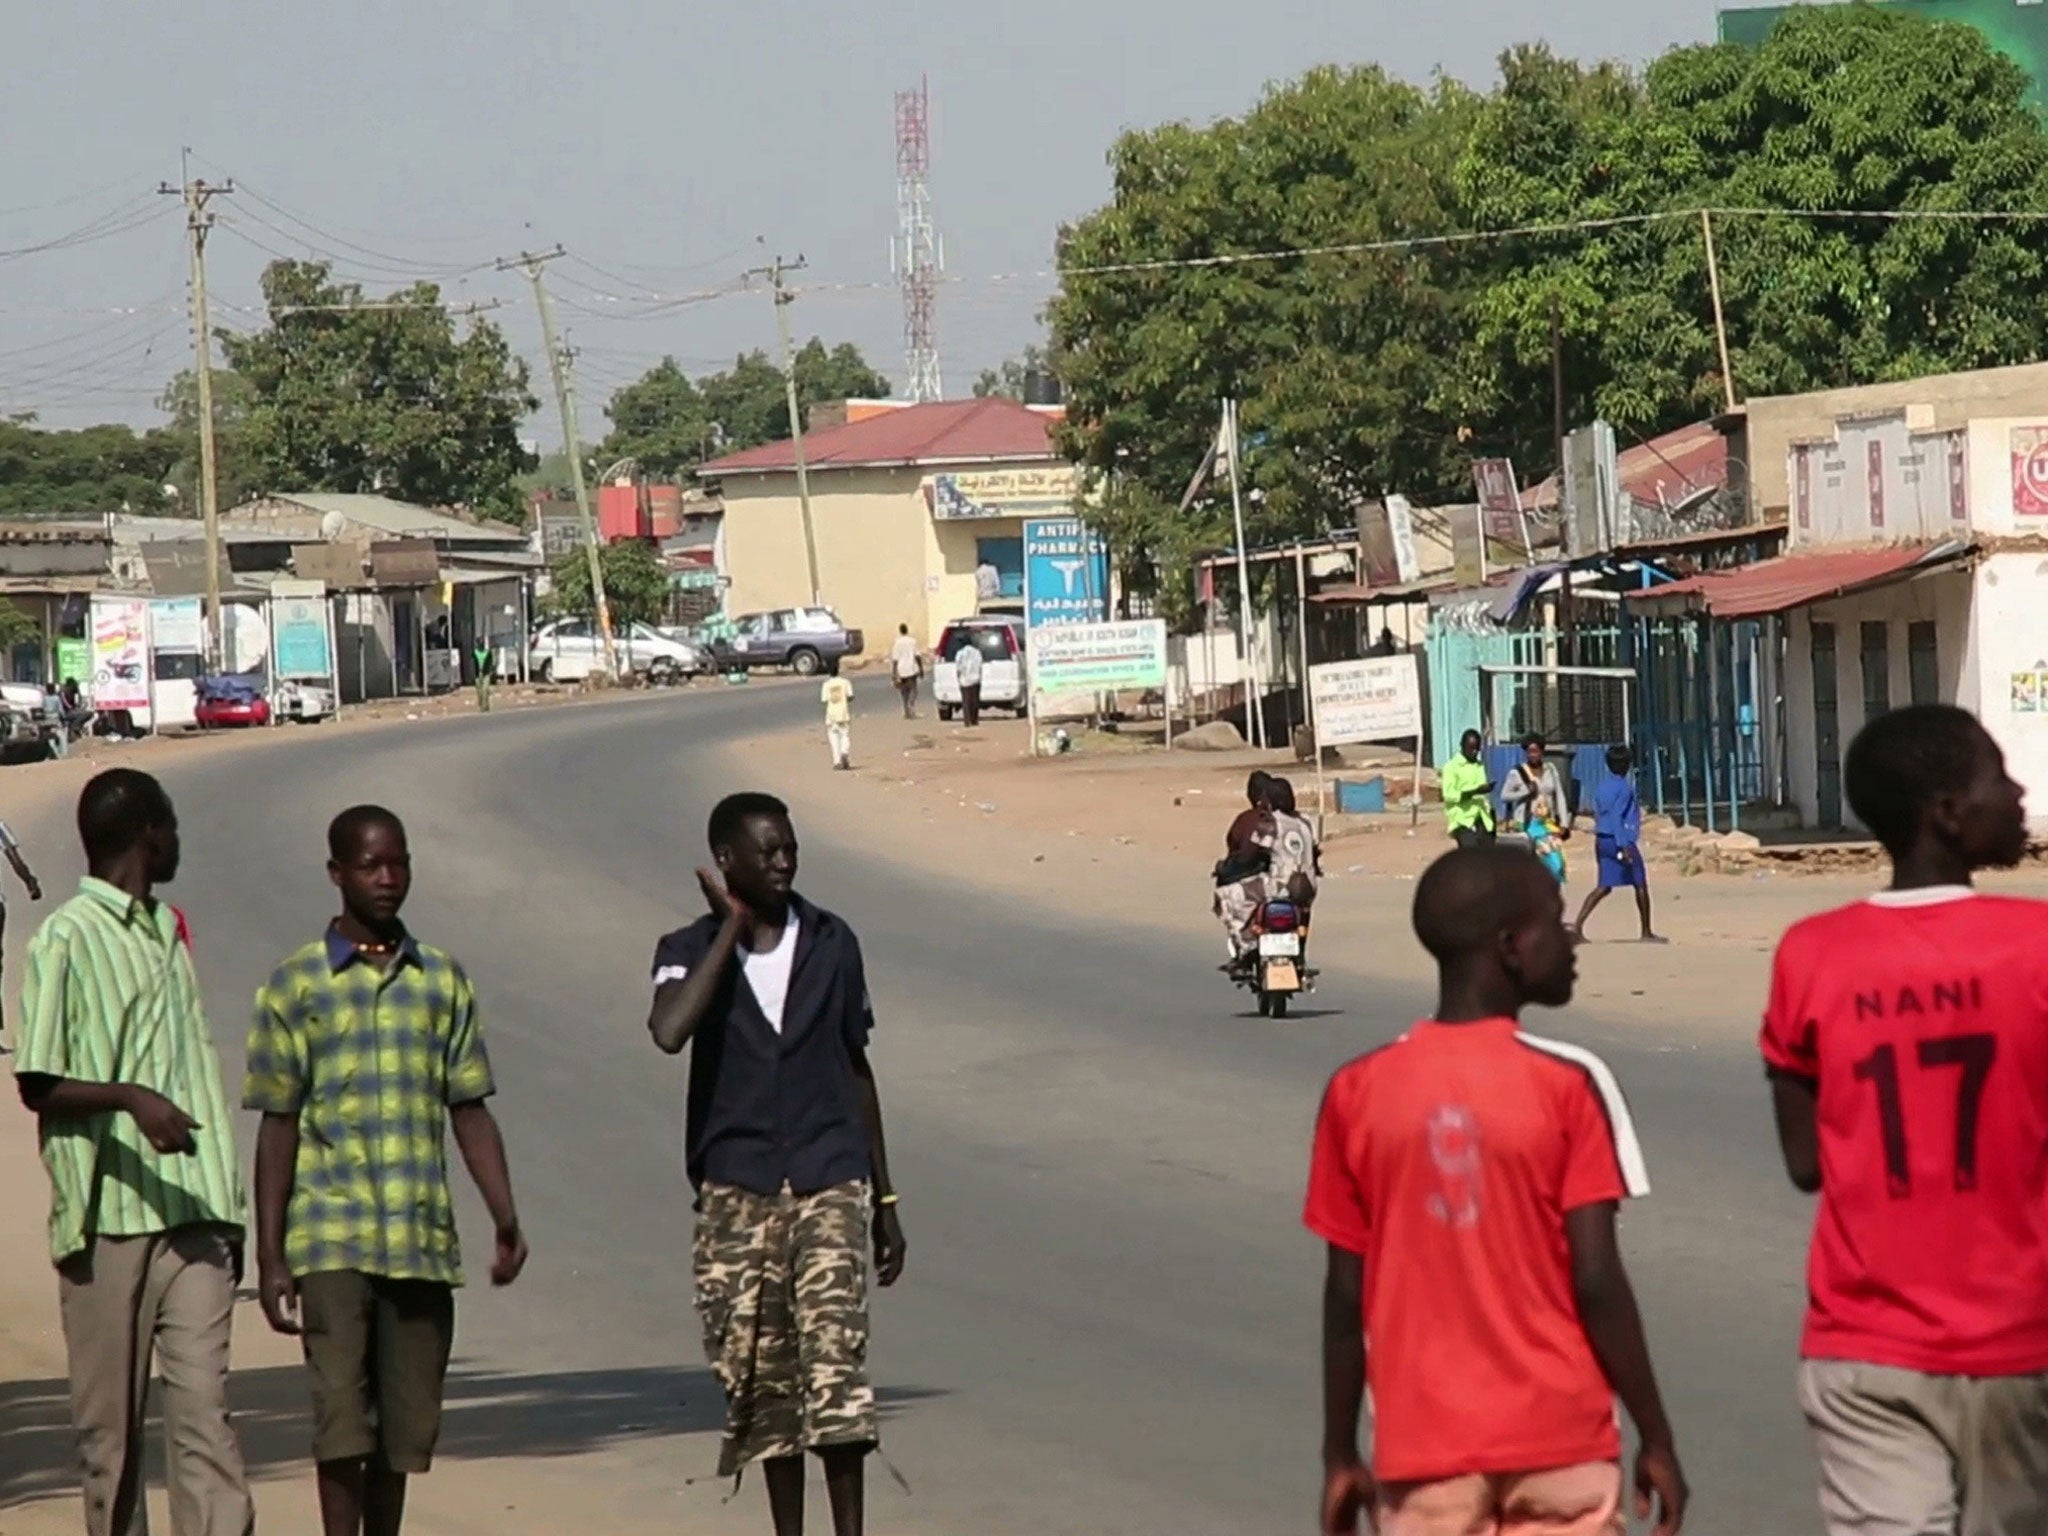 South Sudan The Worlds Newest Country Is Too Poor To Celebrate - World no 1 poor country